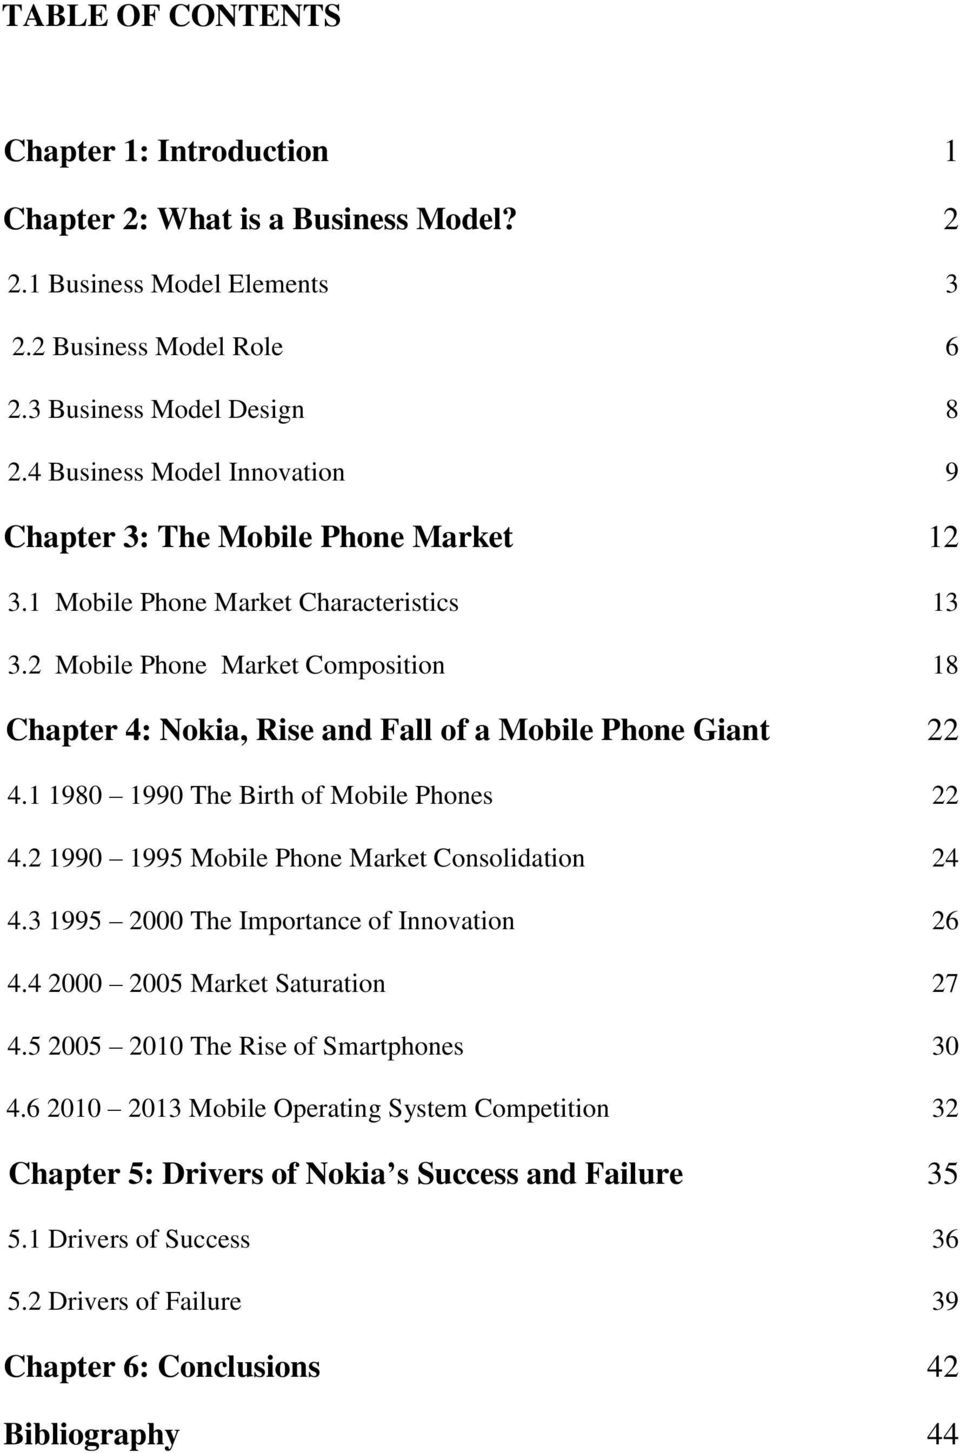 2 Mobile Phone Market Composition 18 Chapter 4: Nokia, Rise and Fall of a Mobile Phone Giant 22 4.1 1980 1990 The Birth of Mobile Phones 22 4.2 1990 1995 Mobile Phone Market Consolidation 24 4.